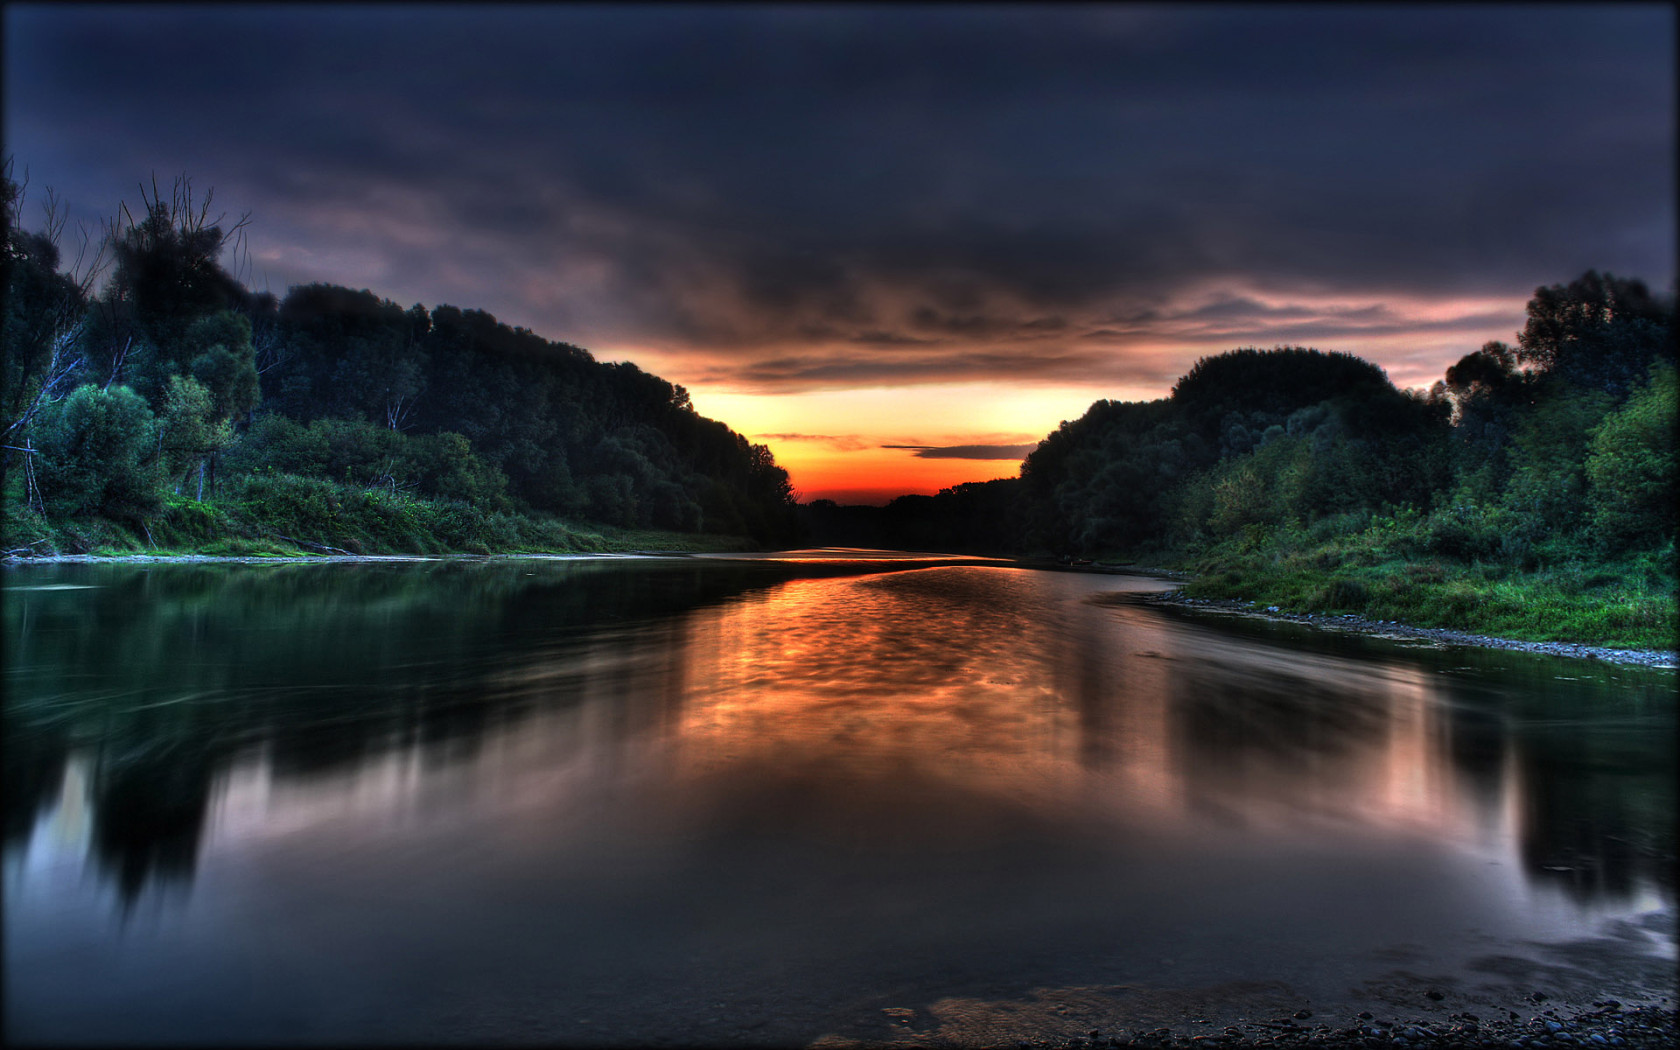 River at sunset HDR - Free desktop wallpapers download